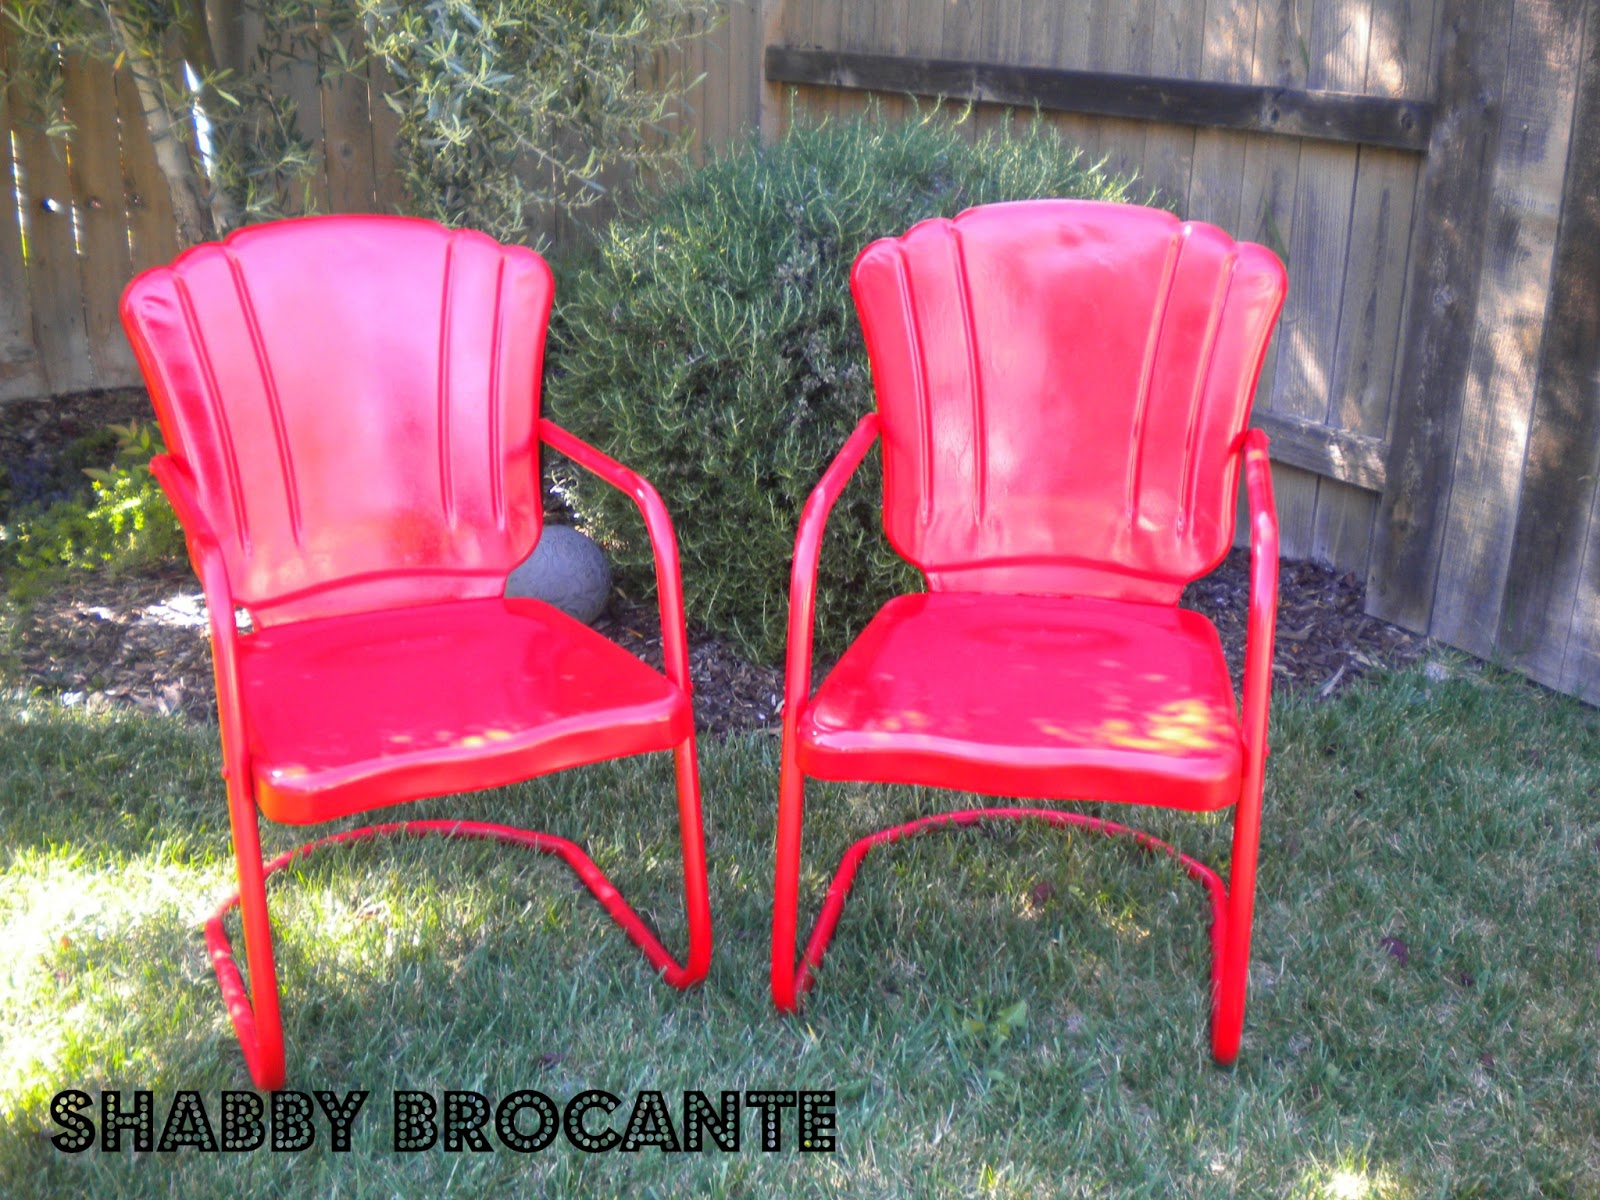 Shabby Brocante: Vintage Metal Lawn Chairs